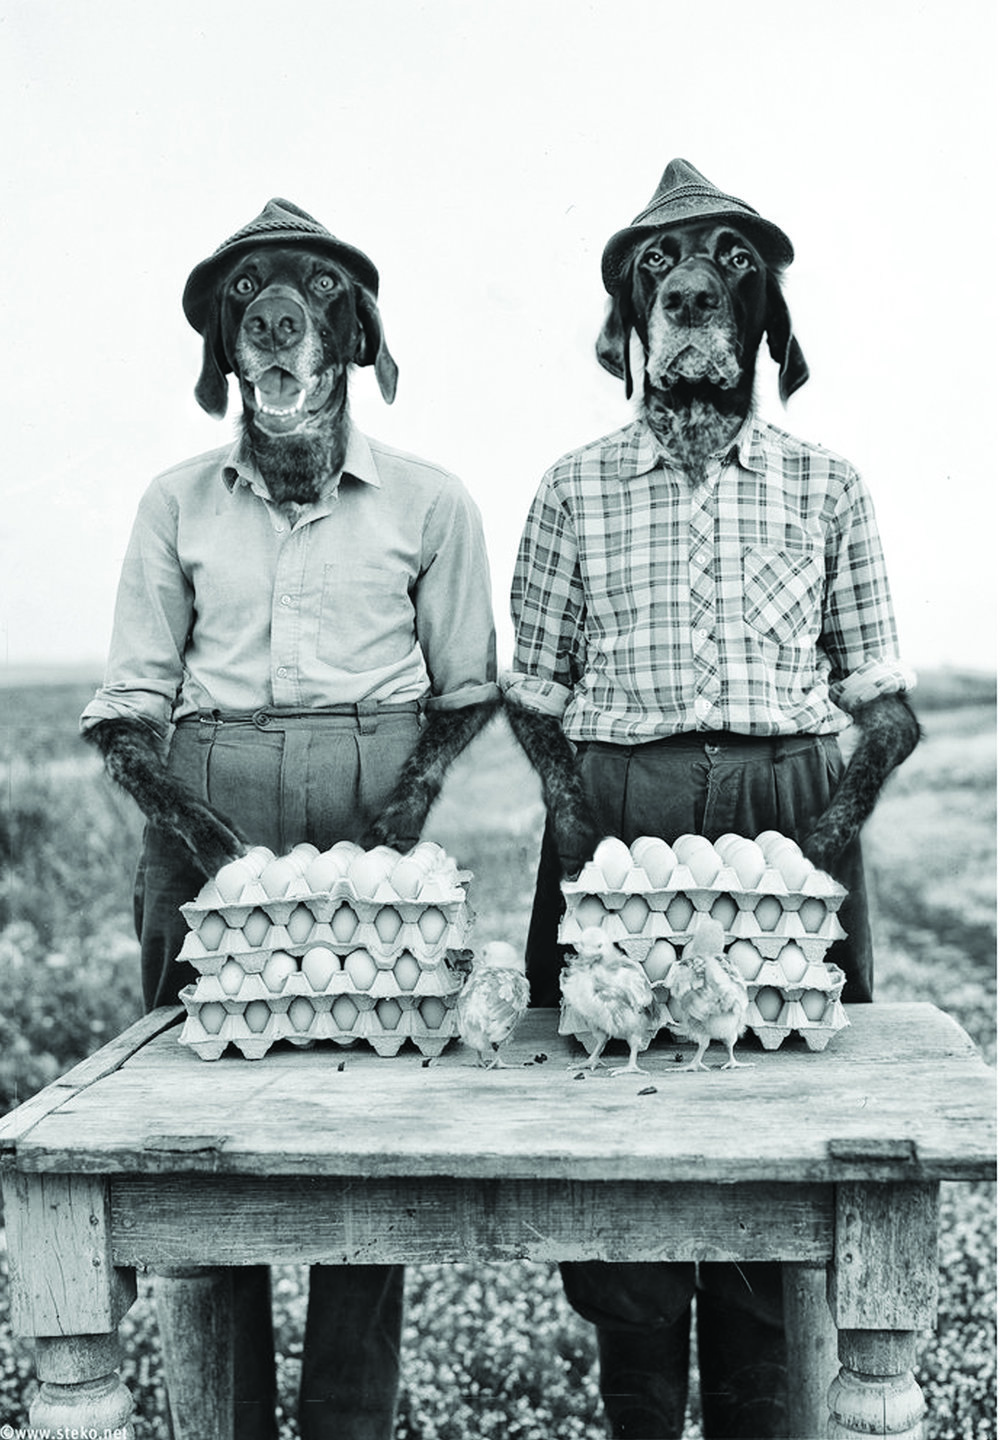 Gordon and Lyle Pointerson. Dust Bowl era chicken farmers. Gordon foresaw the disasters coming from the unnatural growing practices of the times. Lyle on the other hand mistakenly thought Gordon was referring to a 'dust ball' 1928 .